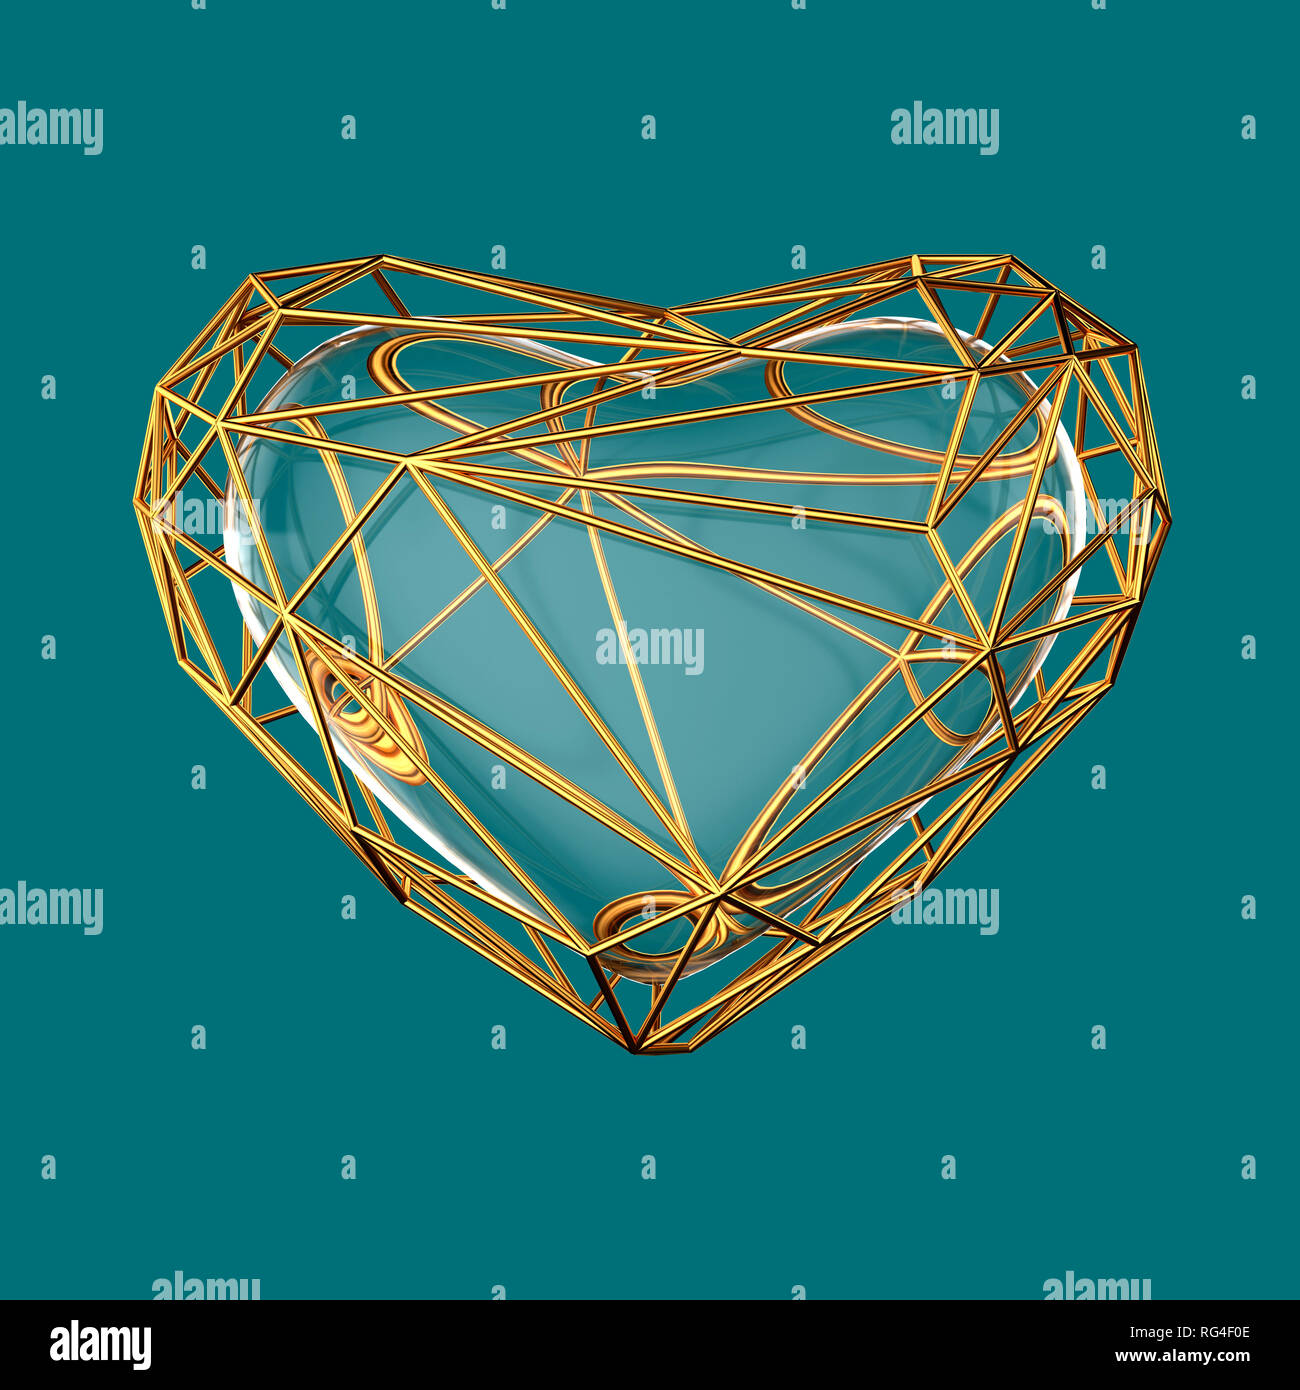 Polygonal golden heart on blue background. Valentines day - Stock Image